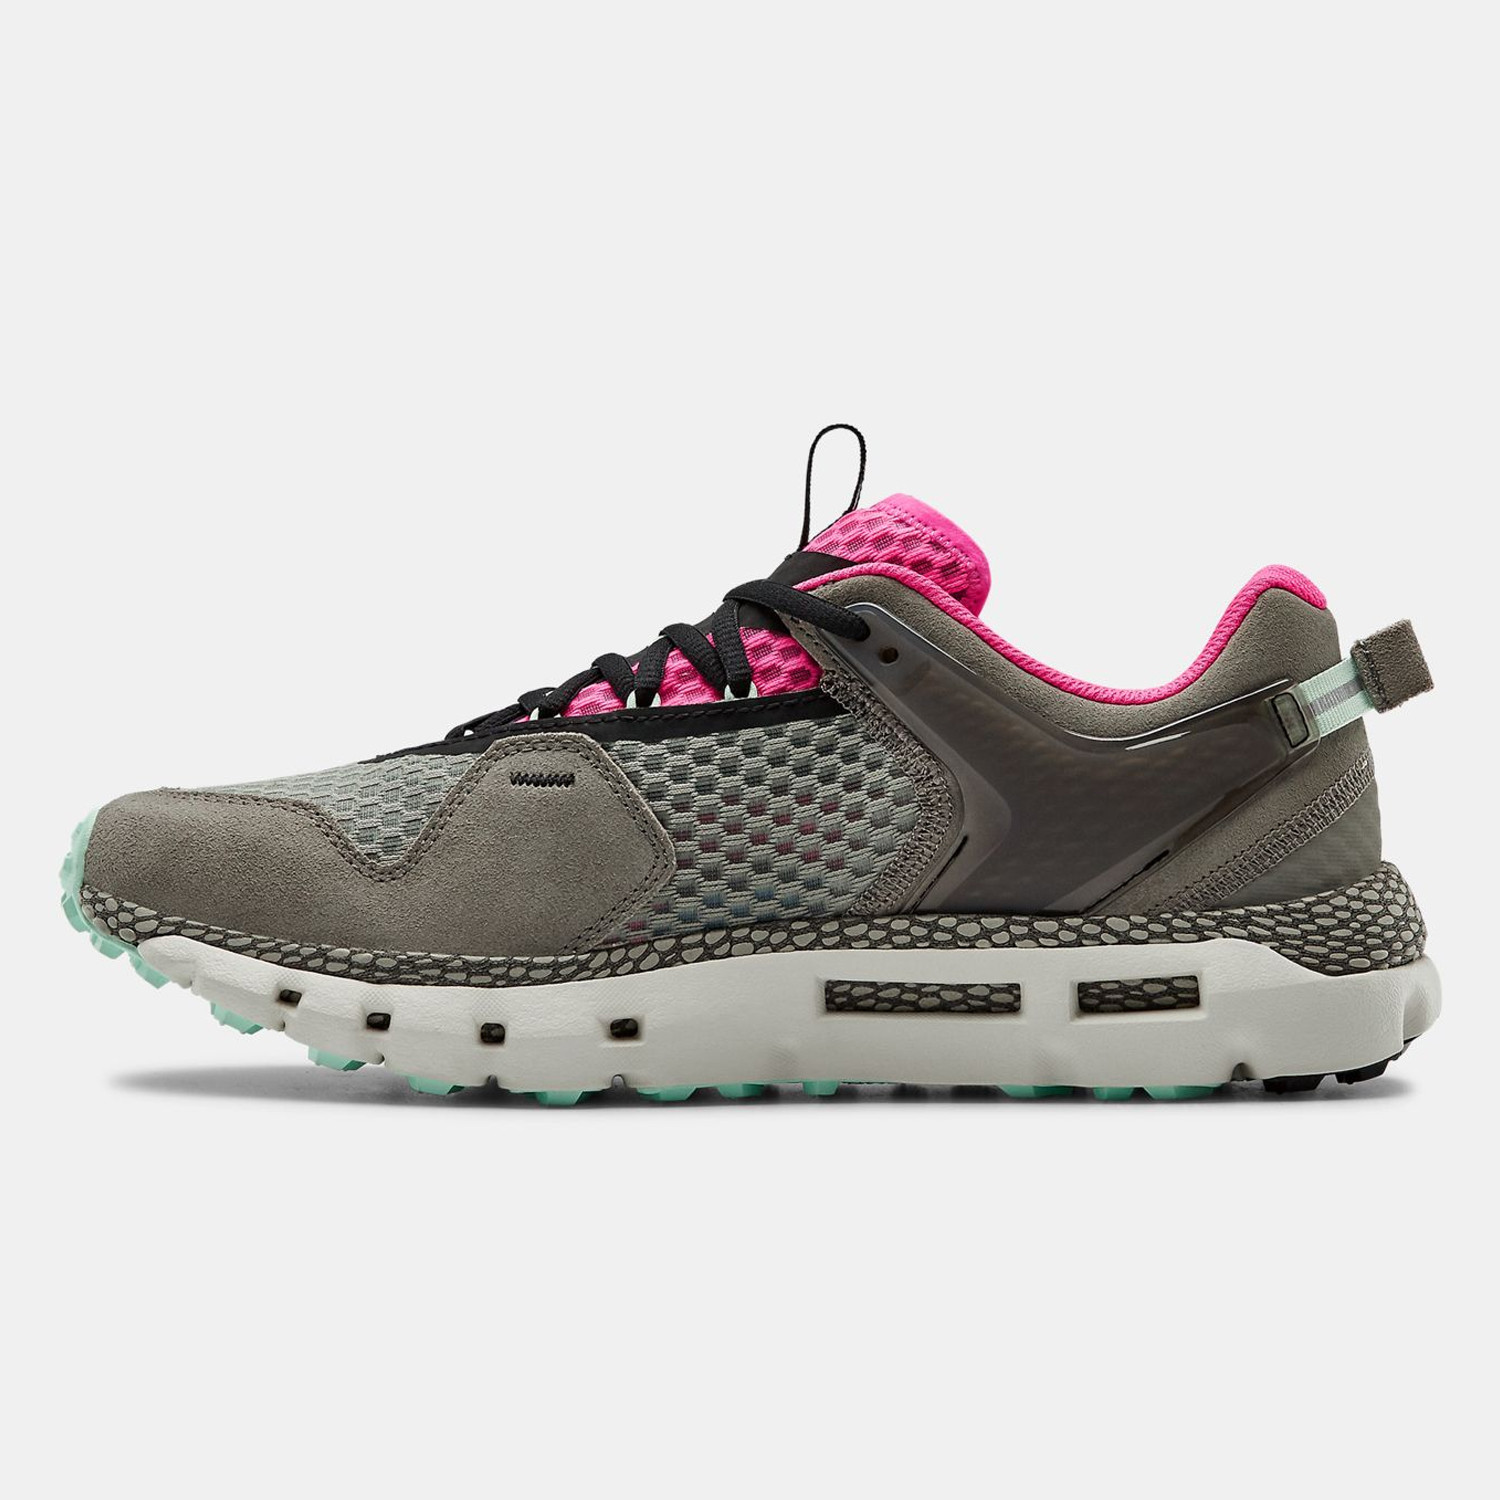 Under Armour HOVR Summit Unisex Shoes